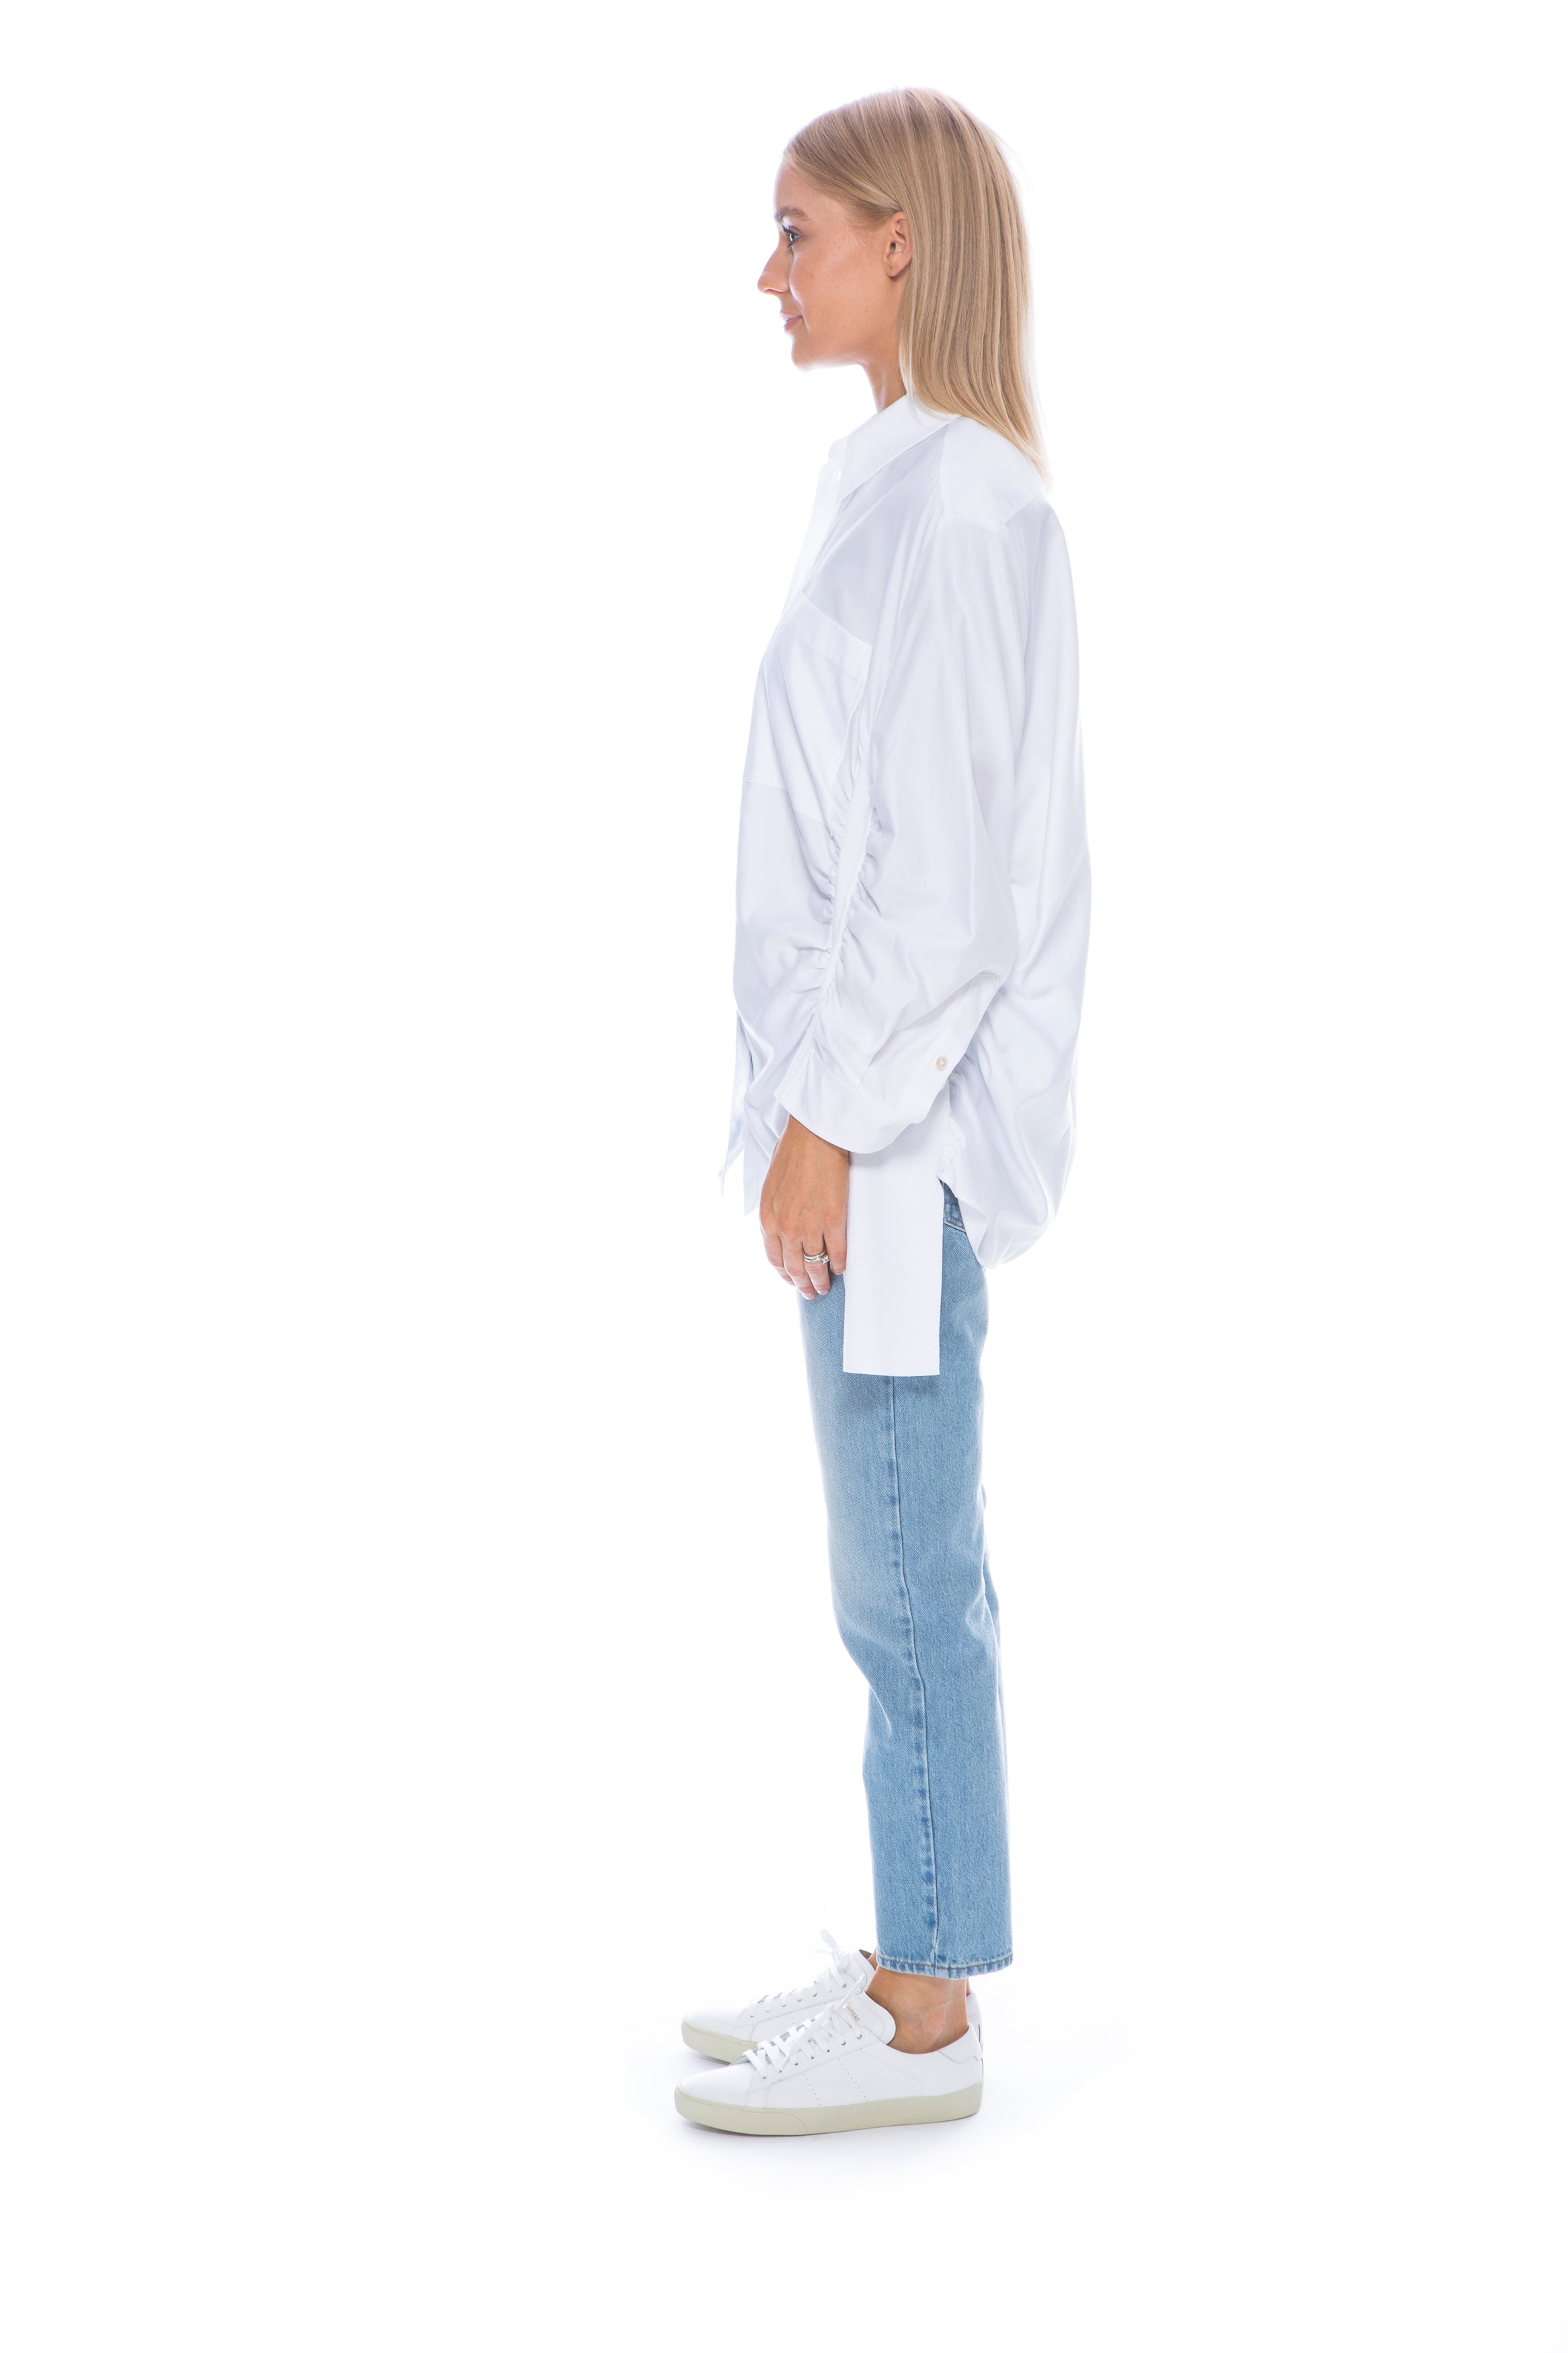 WHITE SHIRT WITH PANELS